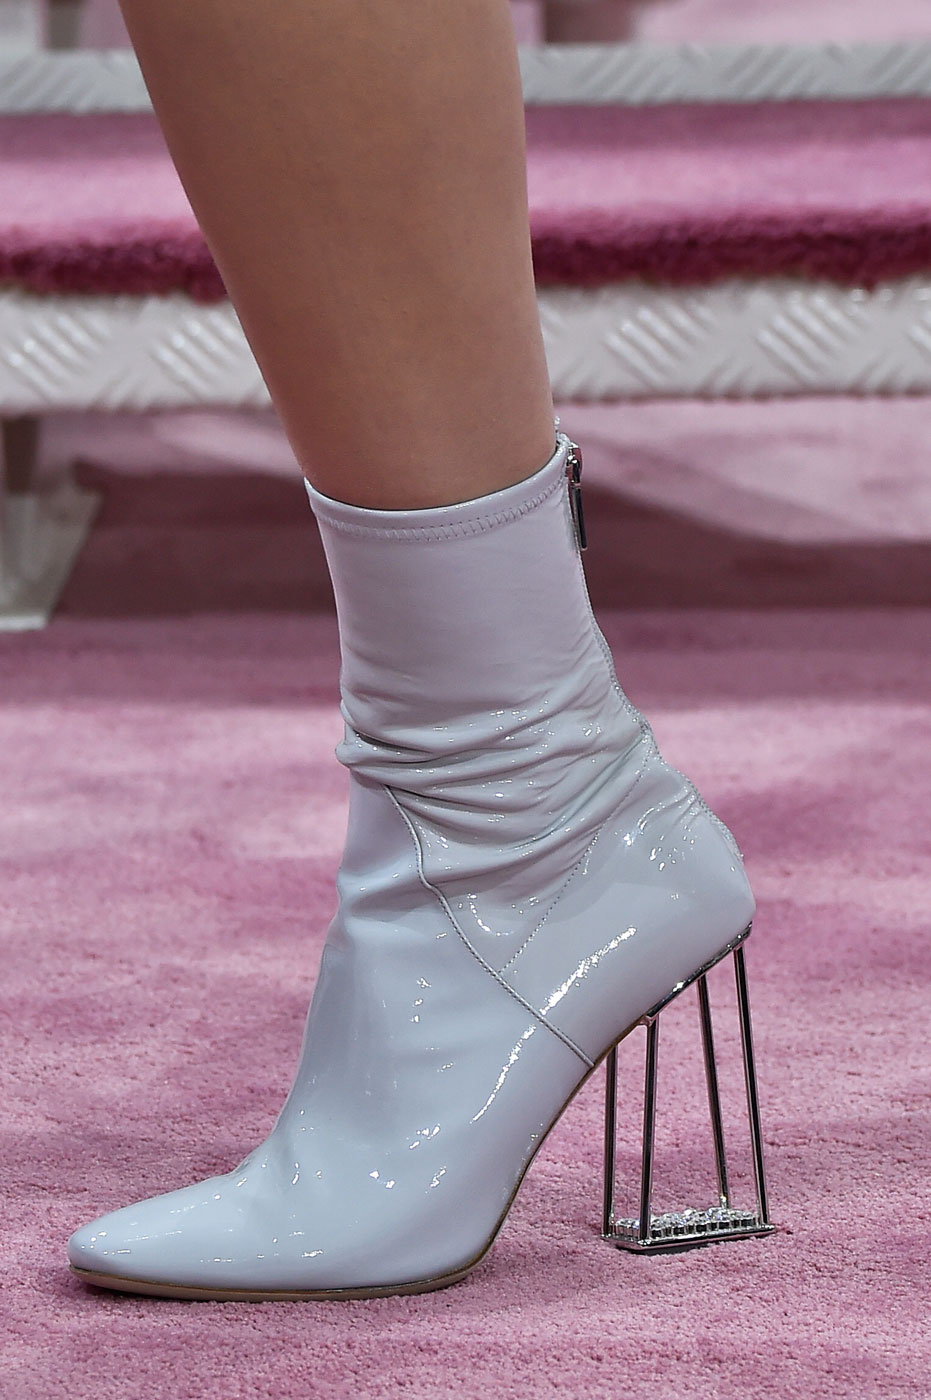 Christian-Dior-fashion-runway-show-close-ups-haute-couture-paris-spring-summer-2015-the-impression-169